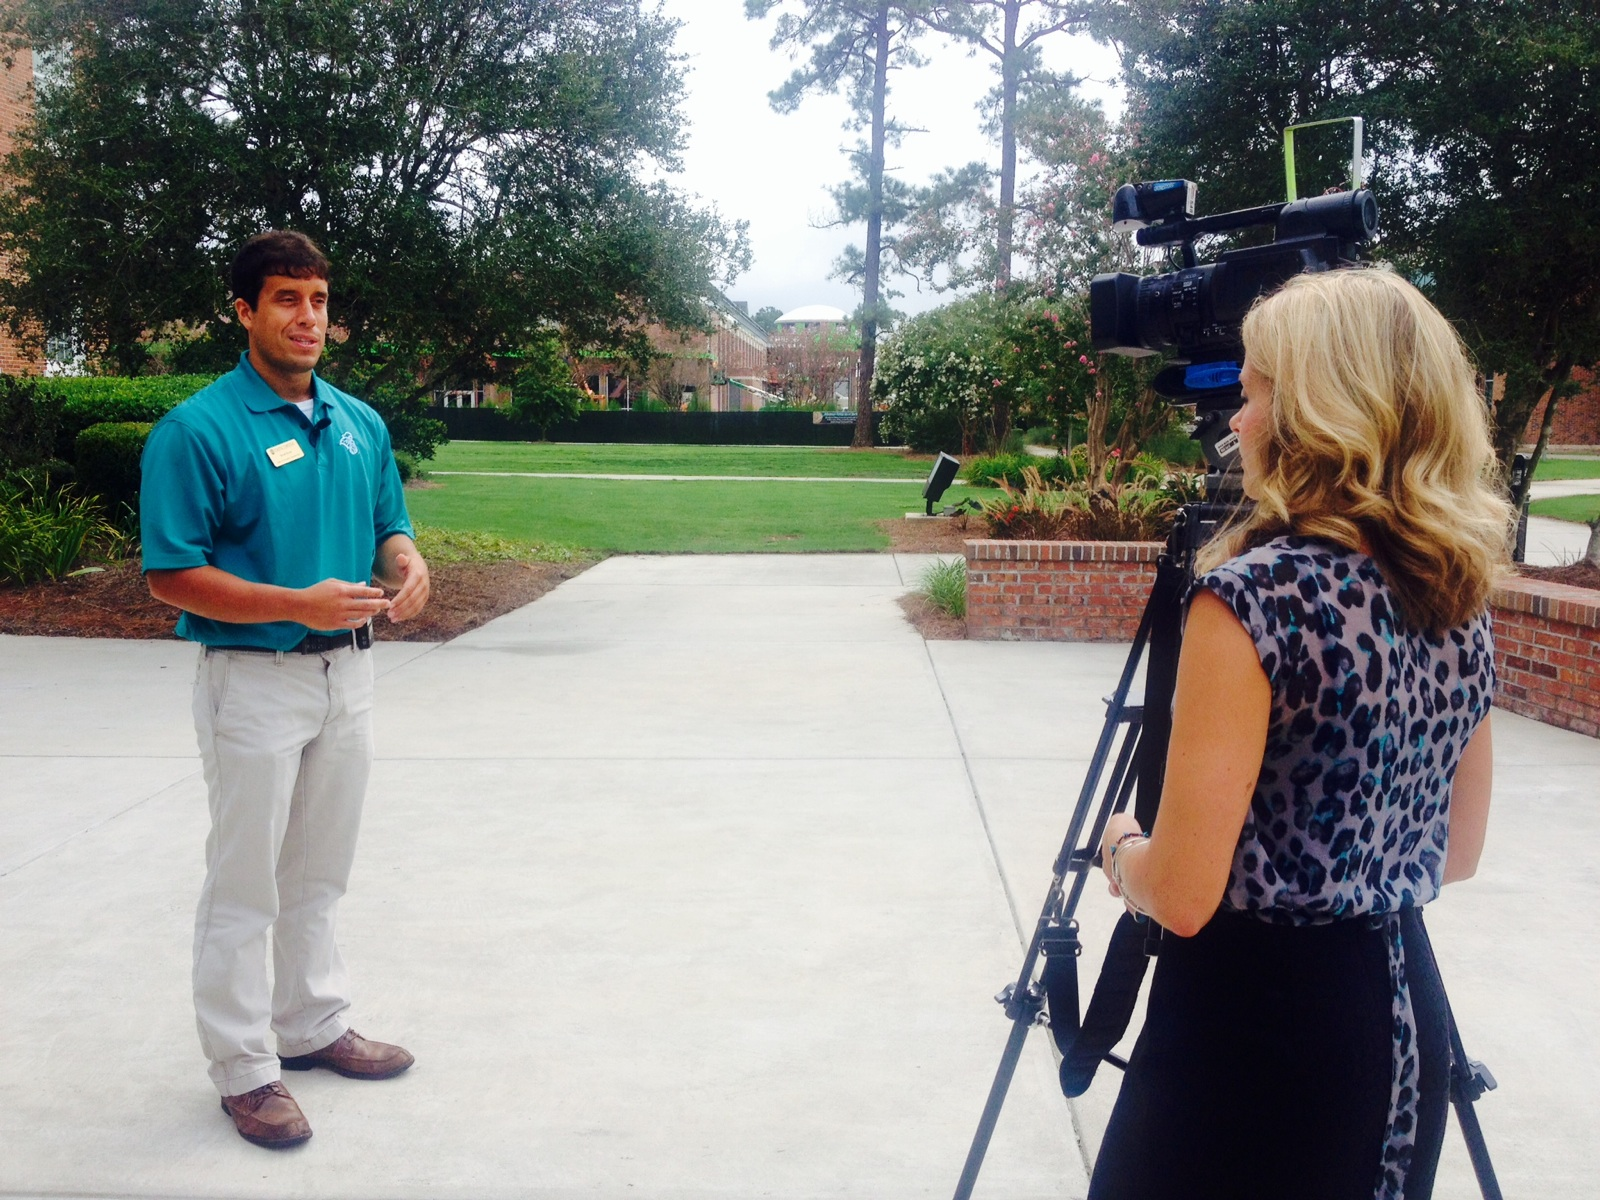 Mandy Noell from WMBF interviews me about CCU Social Media.